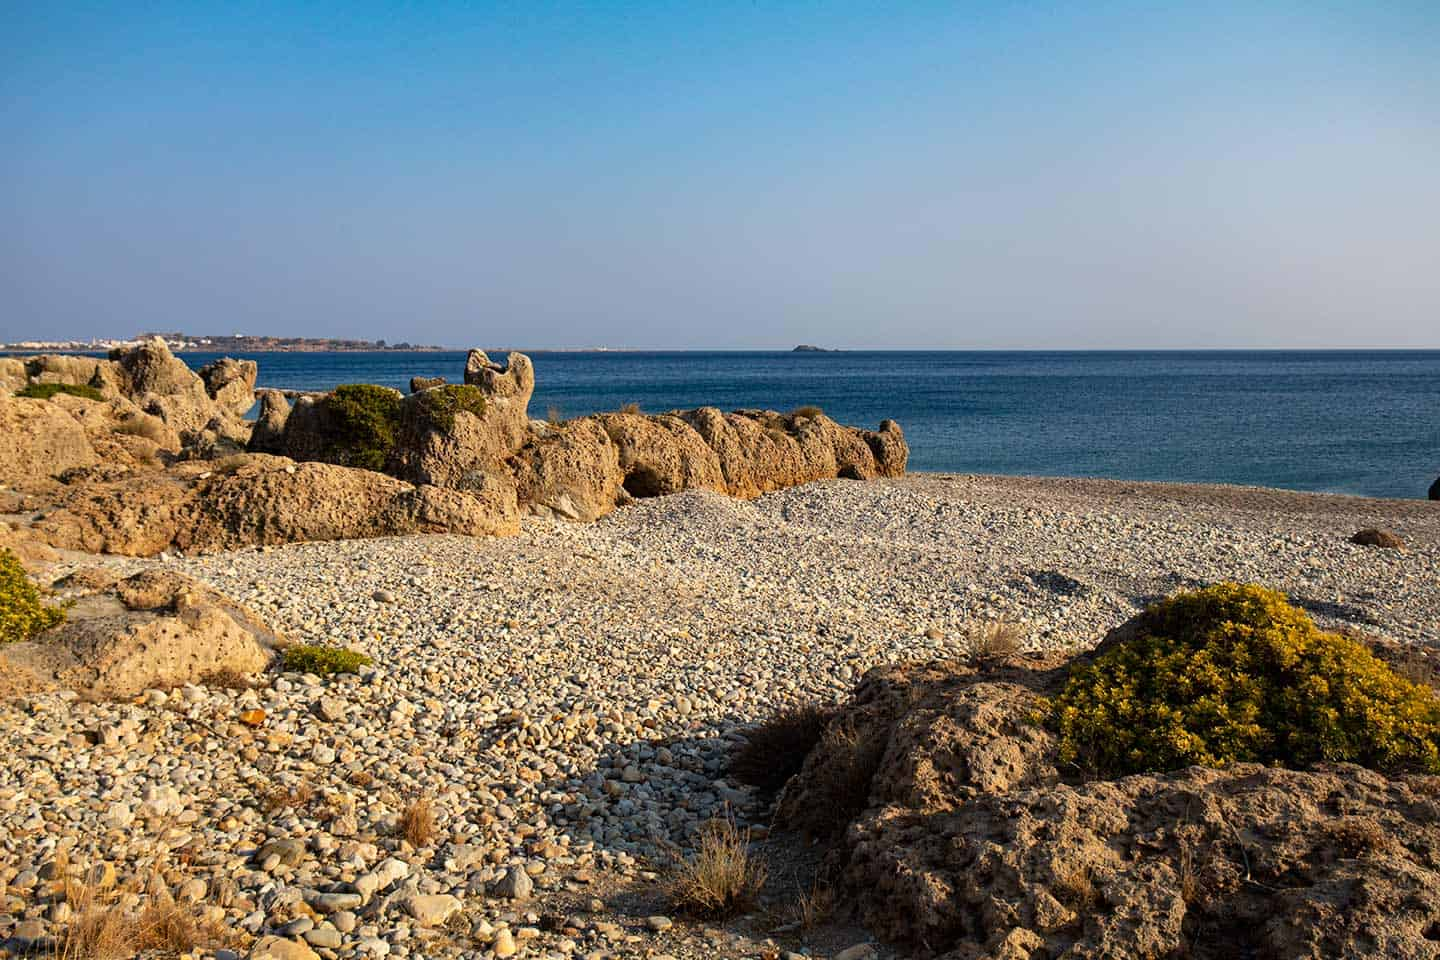 Image of the rock formations at Karavopetra beach Crete